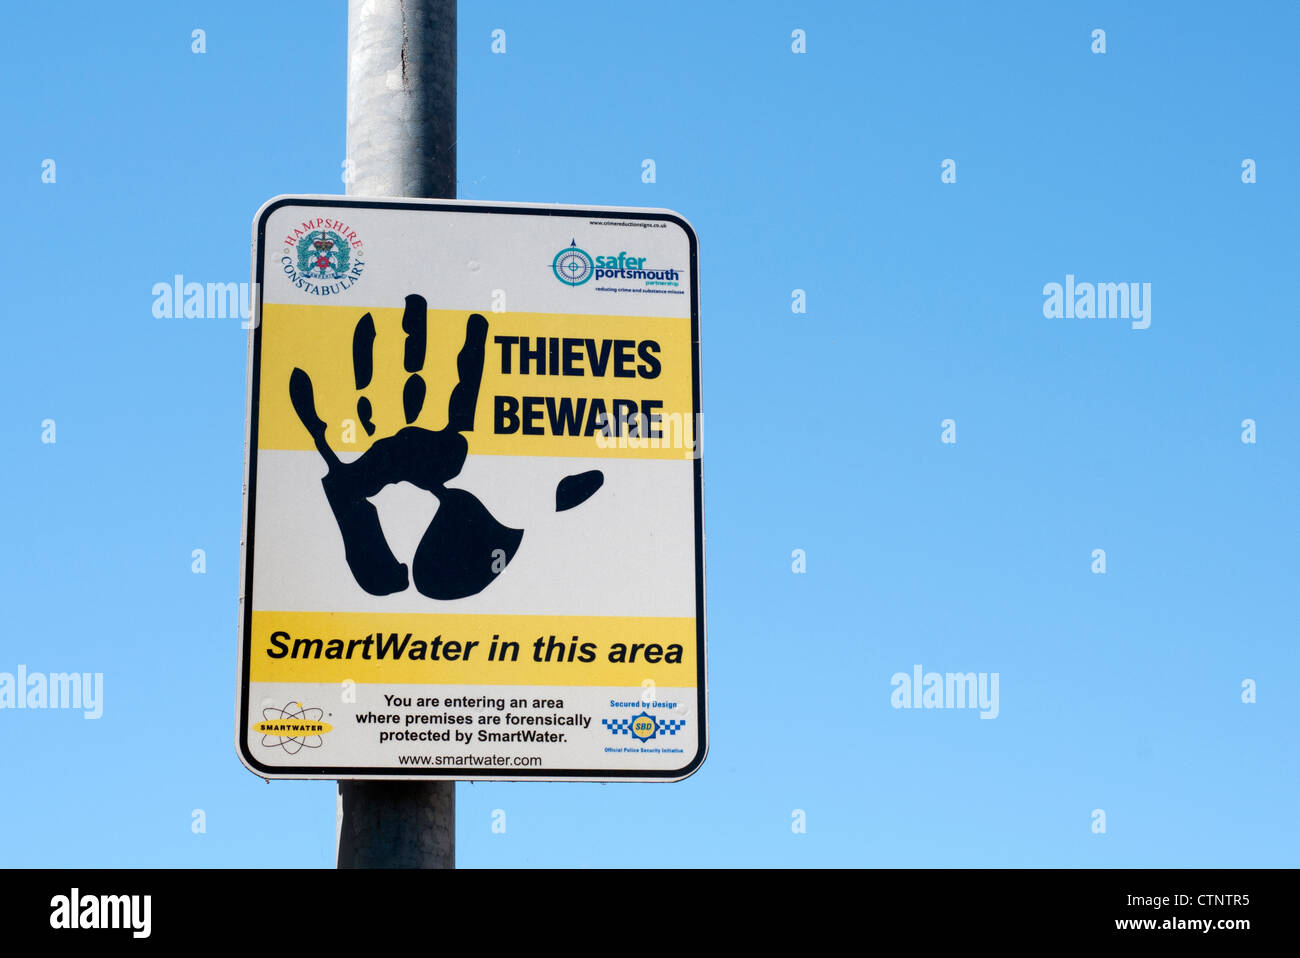 thieves beware warning sign Portsmouth - Stock Image